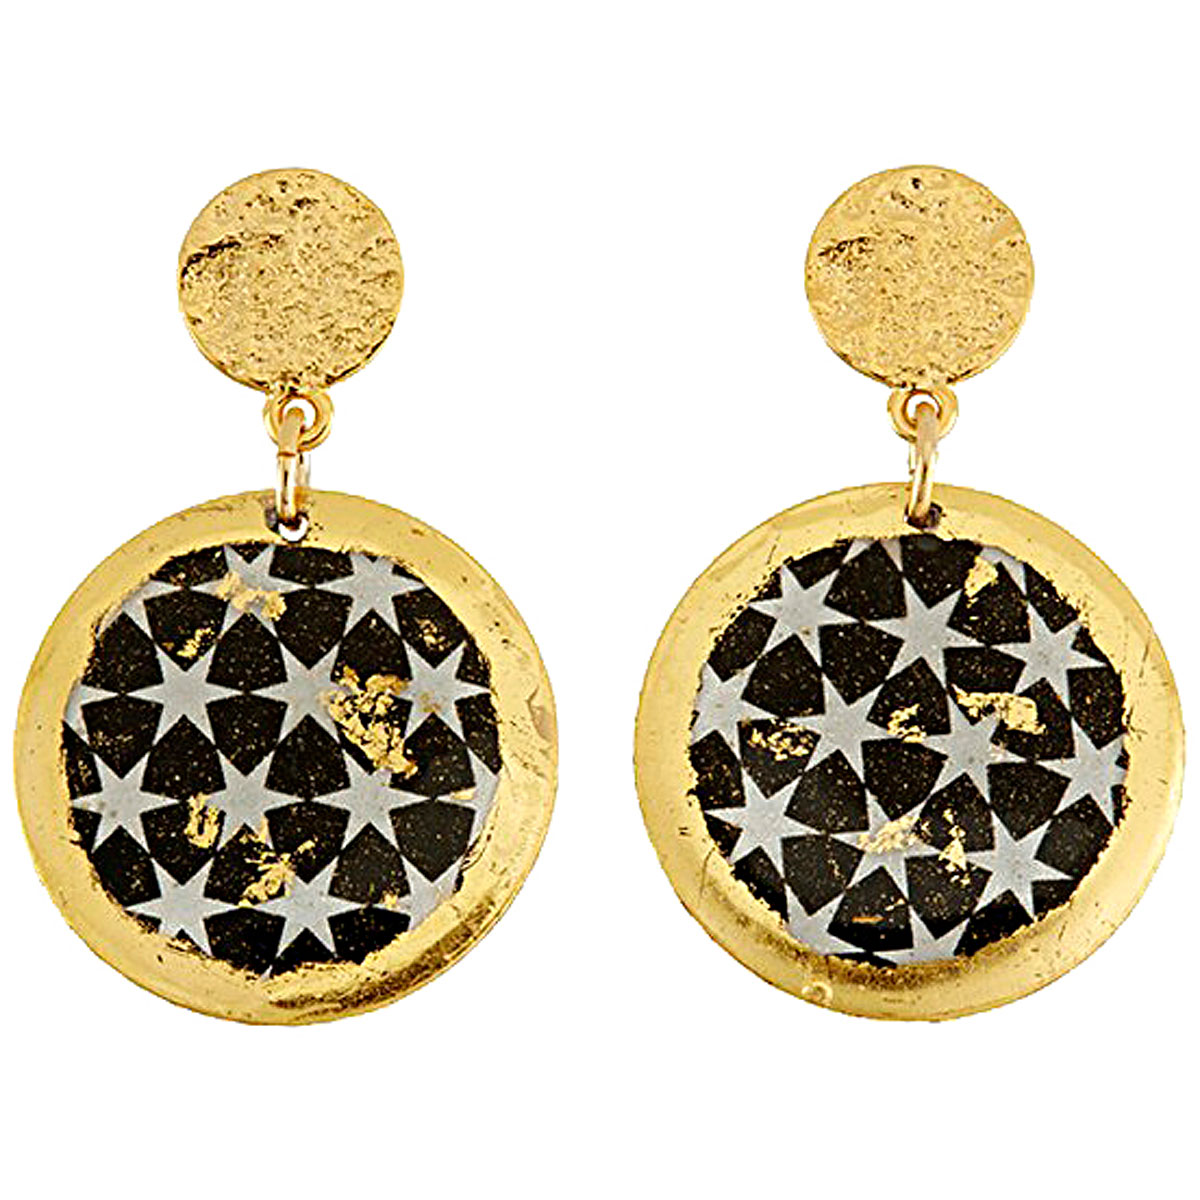 Evocateur Earrings for Women, Black, 22K Gold Leaf, 2019